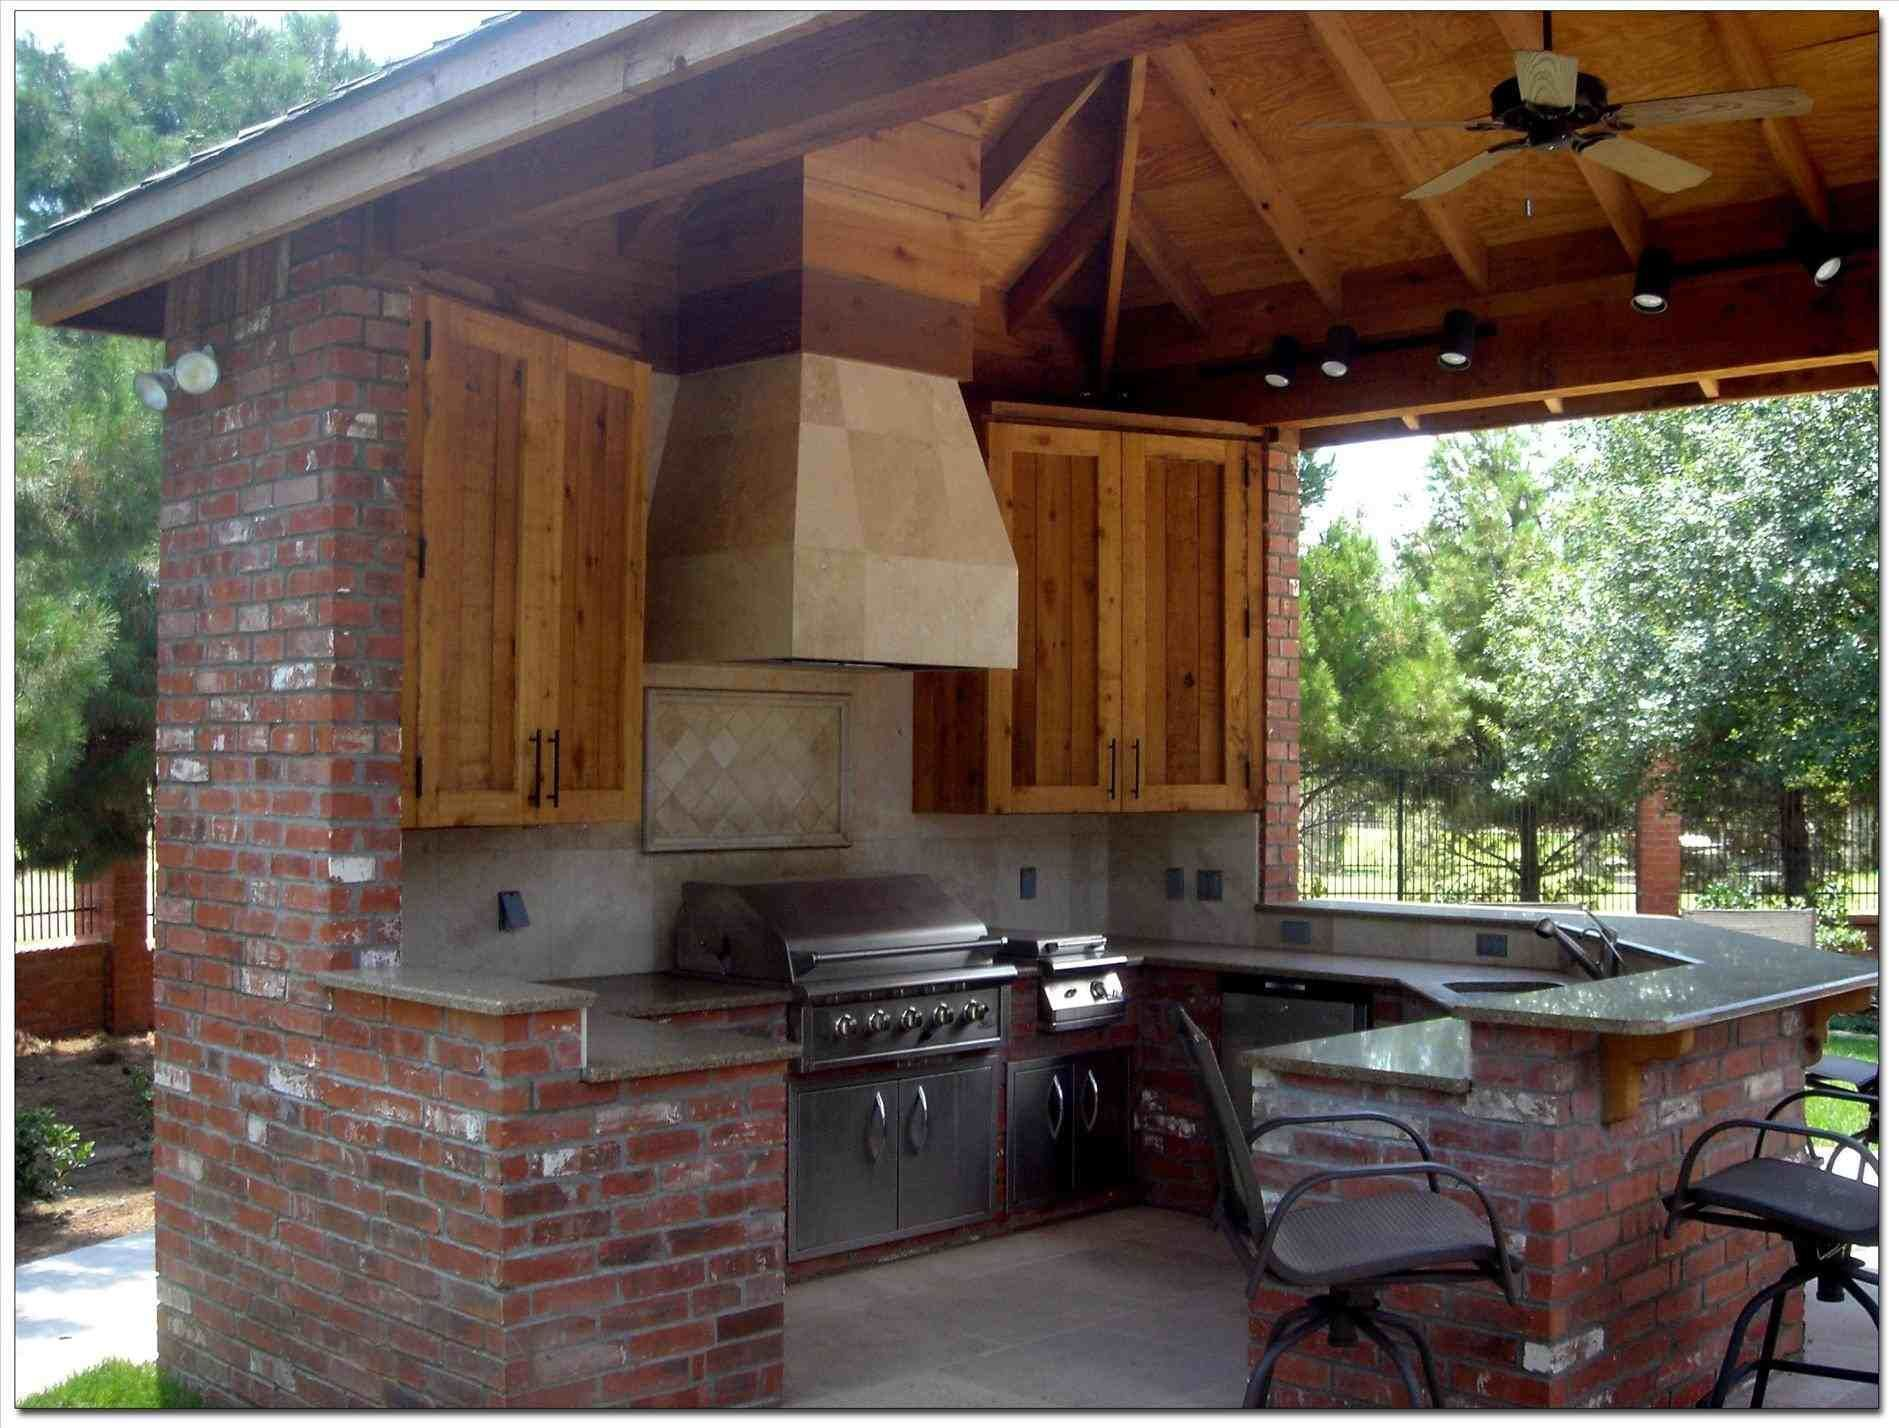 An With Wood Outofhome Inexpensive Bbq Island Building Rustic Outdoor Kitchen Designs An Inexpen Outdoor Kitchen Decor Rustic Outdoor Kitchens Backyard Kitchen